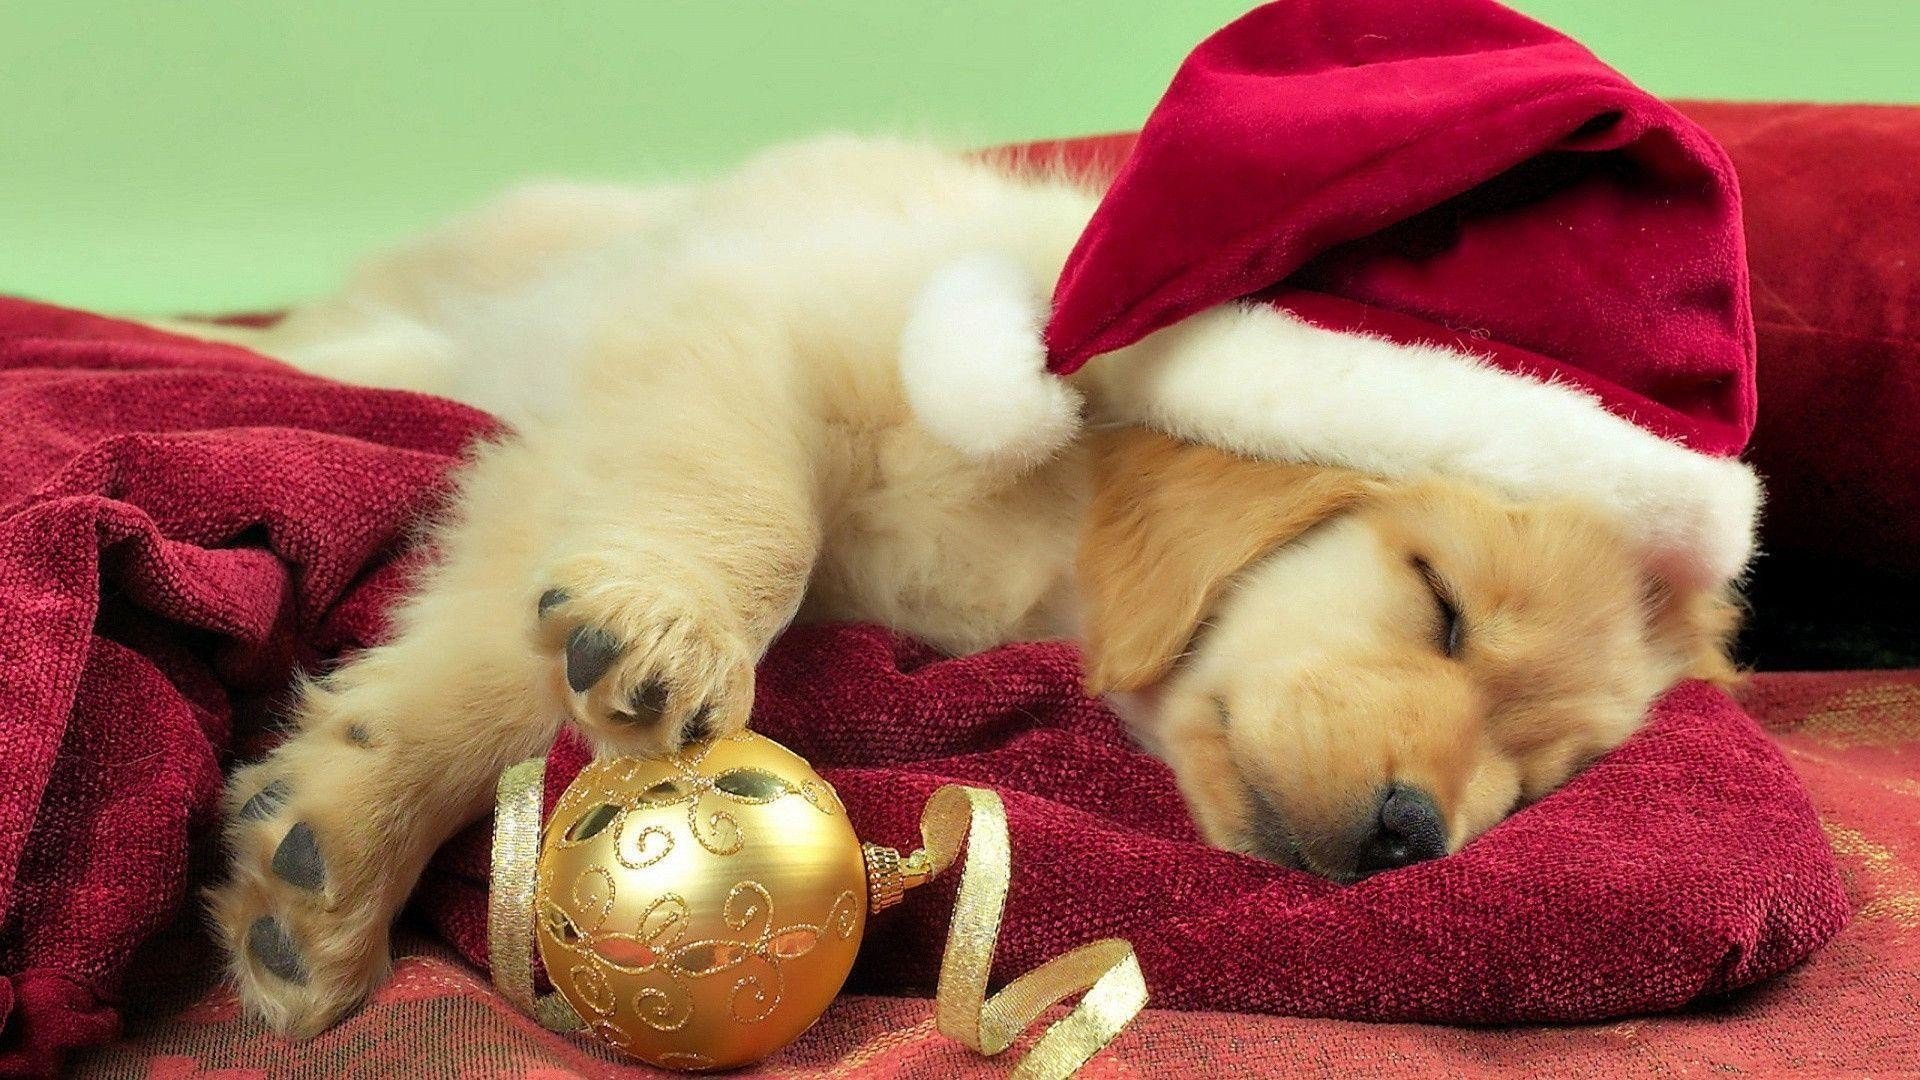 2000x1333 Cute Puppies Wallpapers Free Download 187241